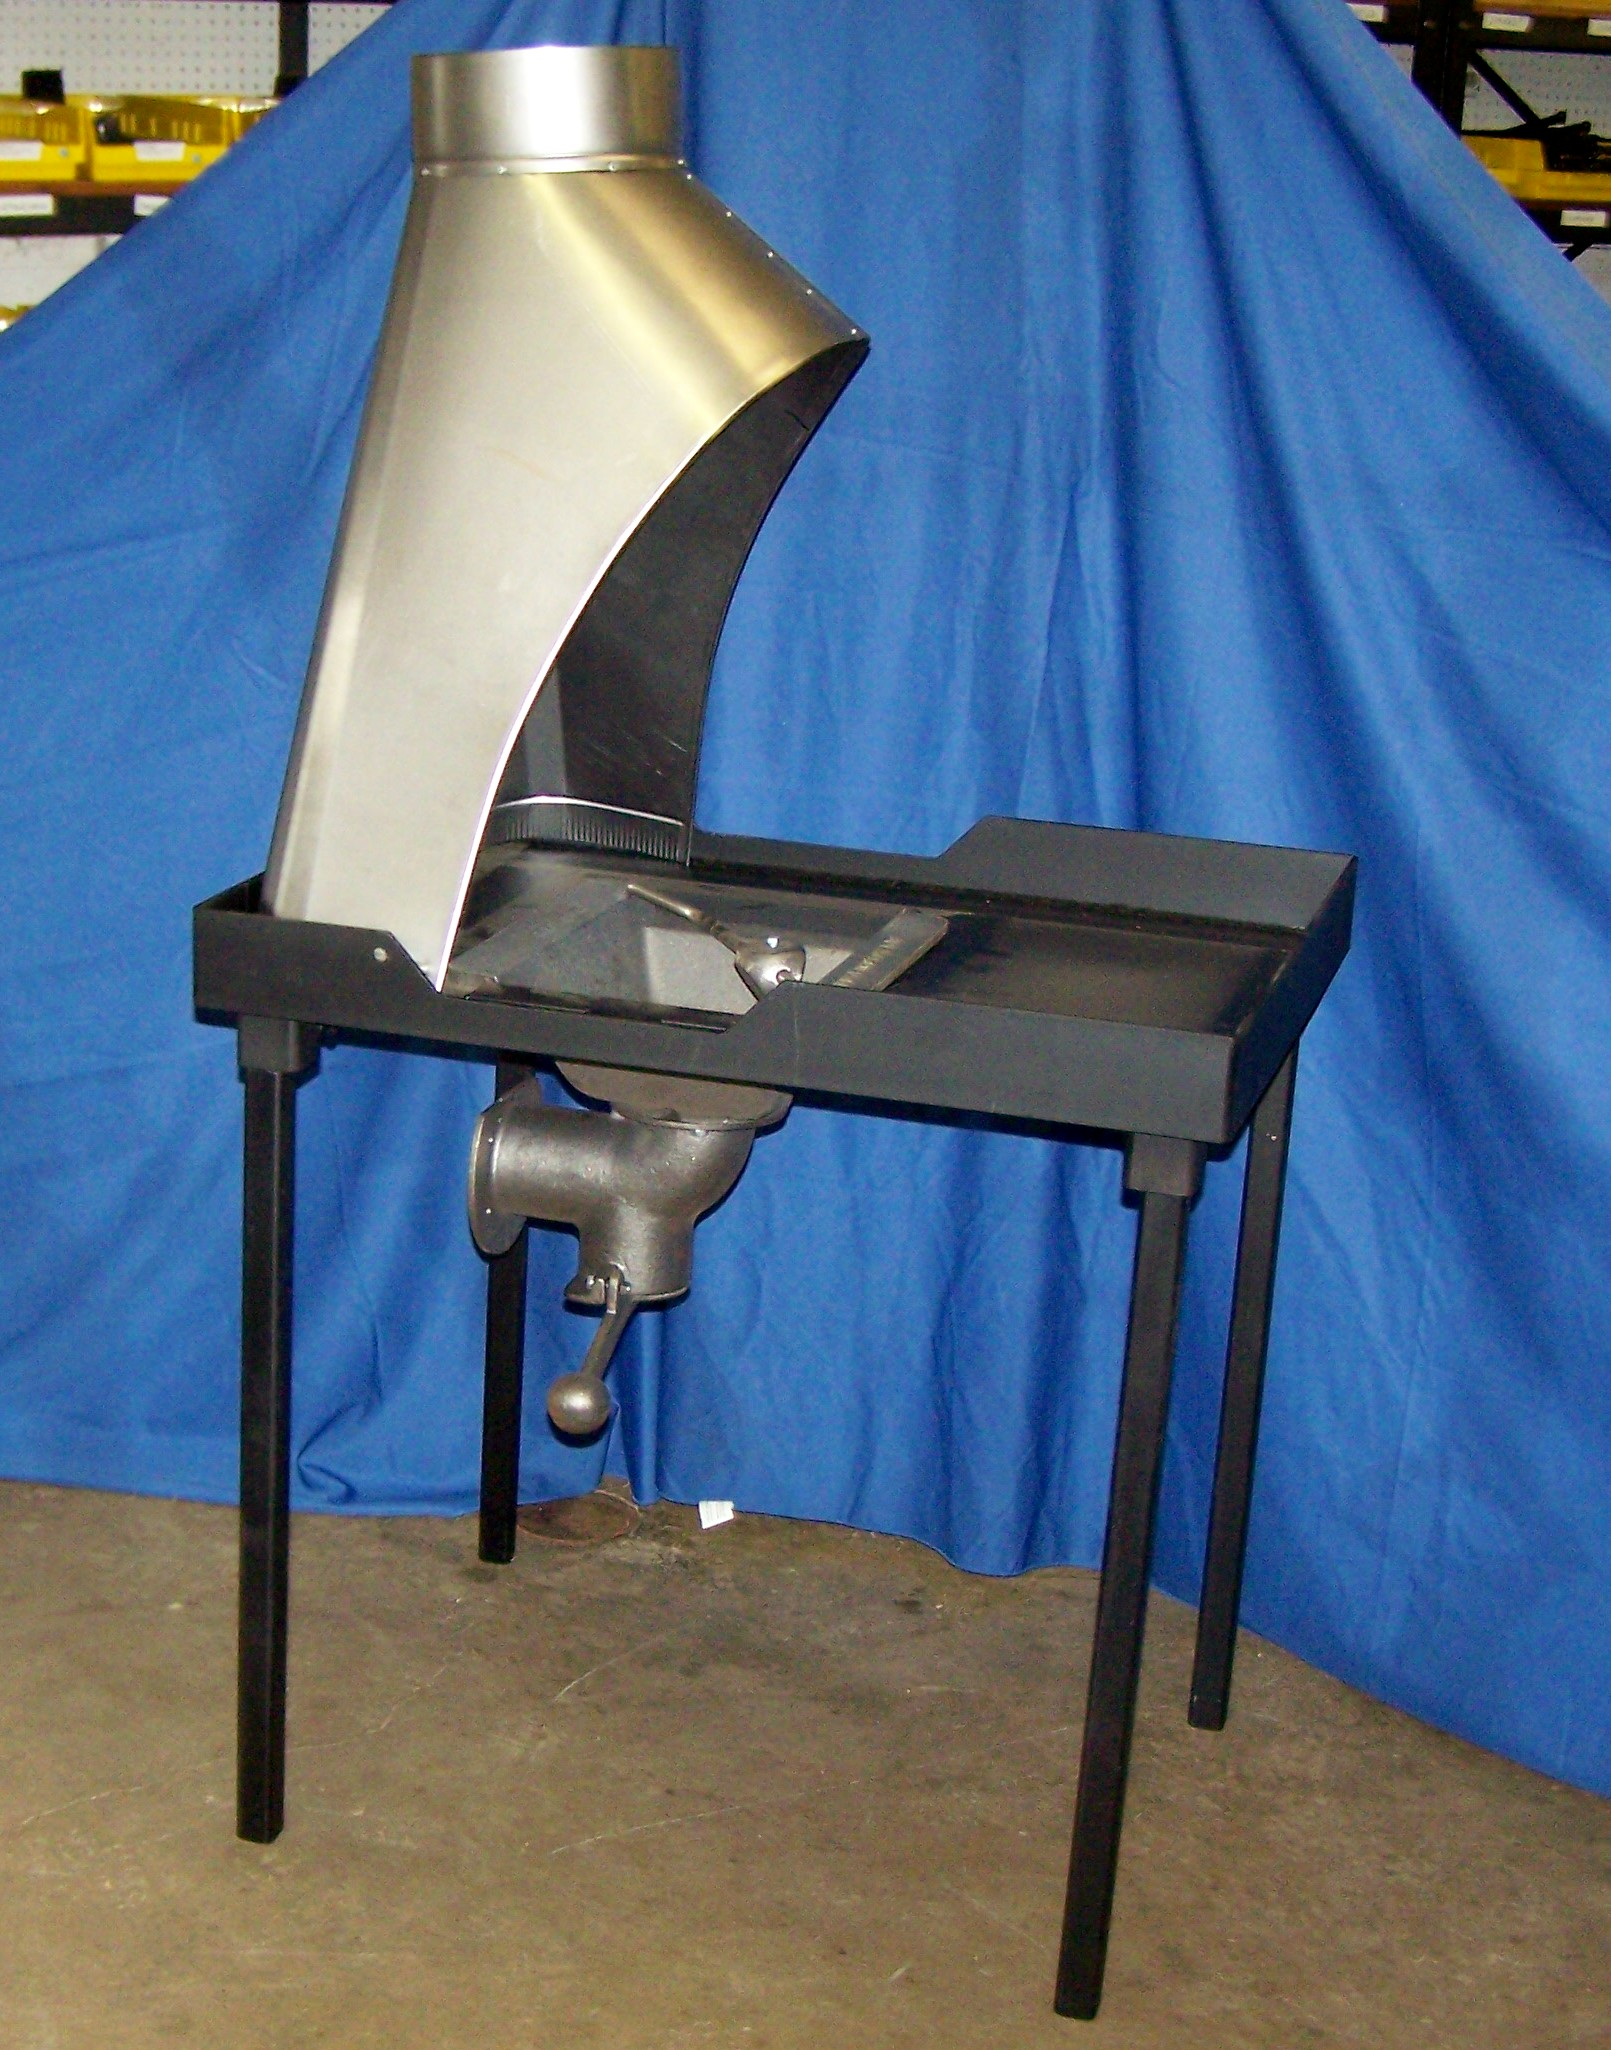 Centaur C36 Floor Model Coal Forge with Hood - Eligible for Free Shipping.  See Home Page for full details